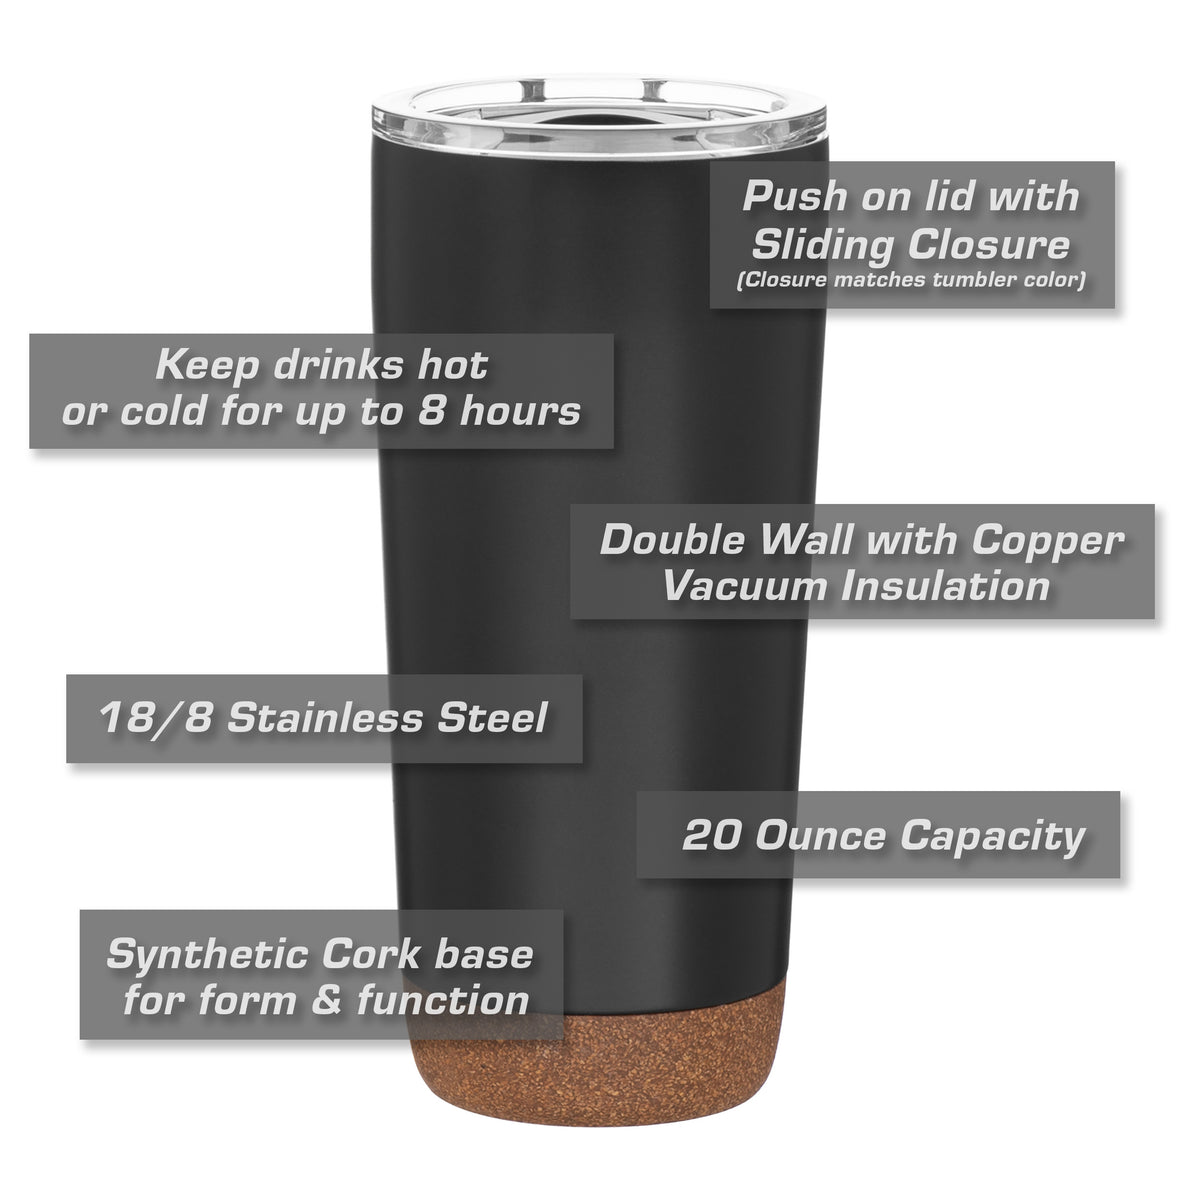 SS MAMA Insulated Stainless Steel Coffee Tumbler - 20 oz